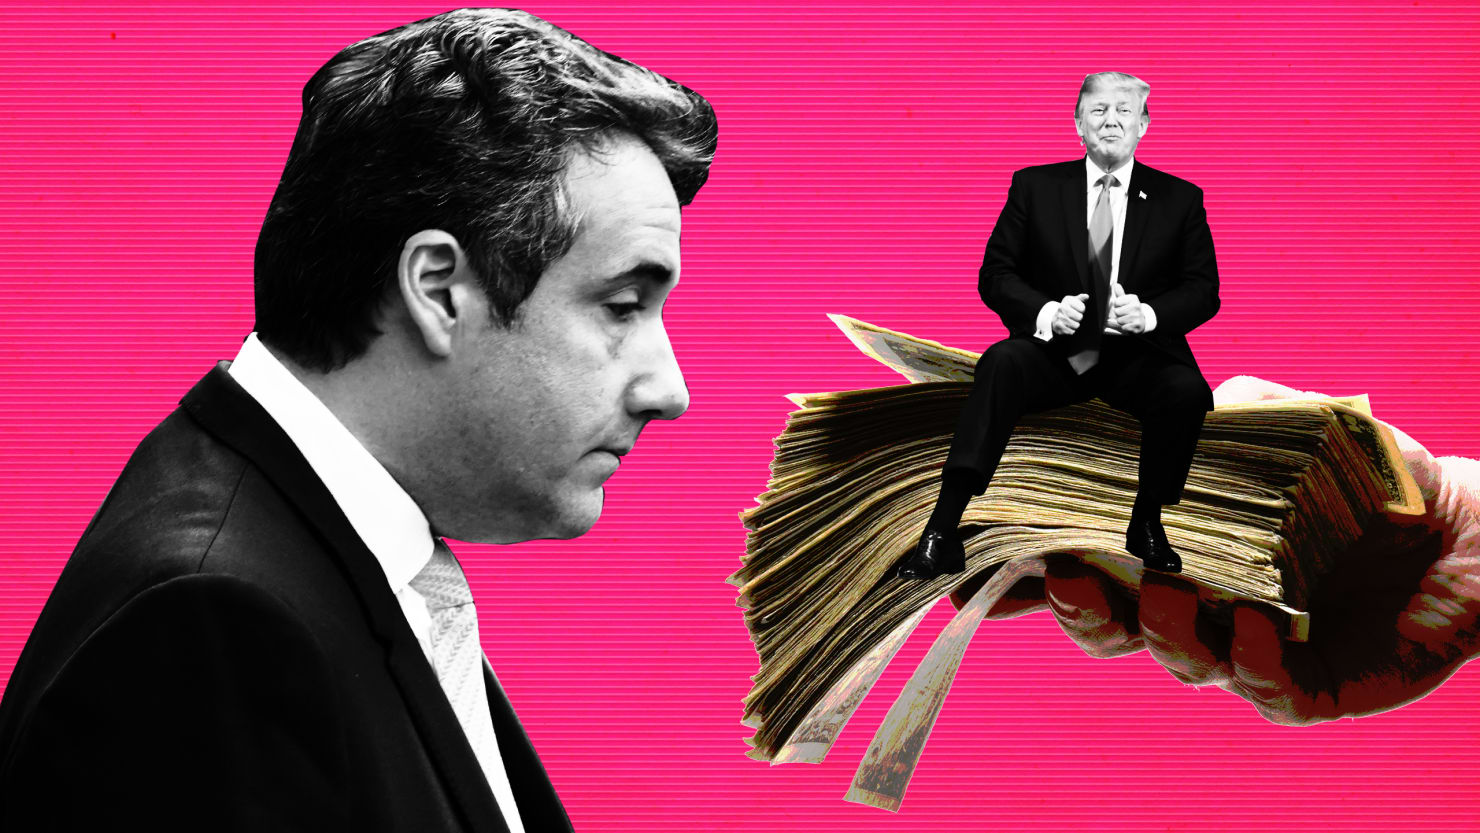 Michael Cohen Was Paid More Than $4 Million by Promising Access to Trump, Prosecutors Say